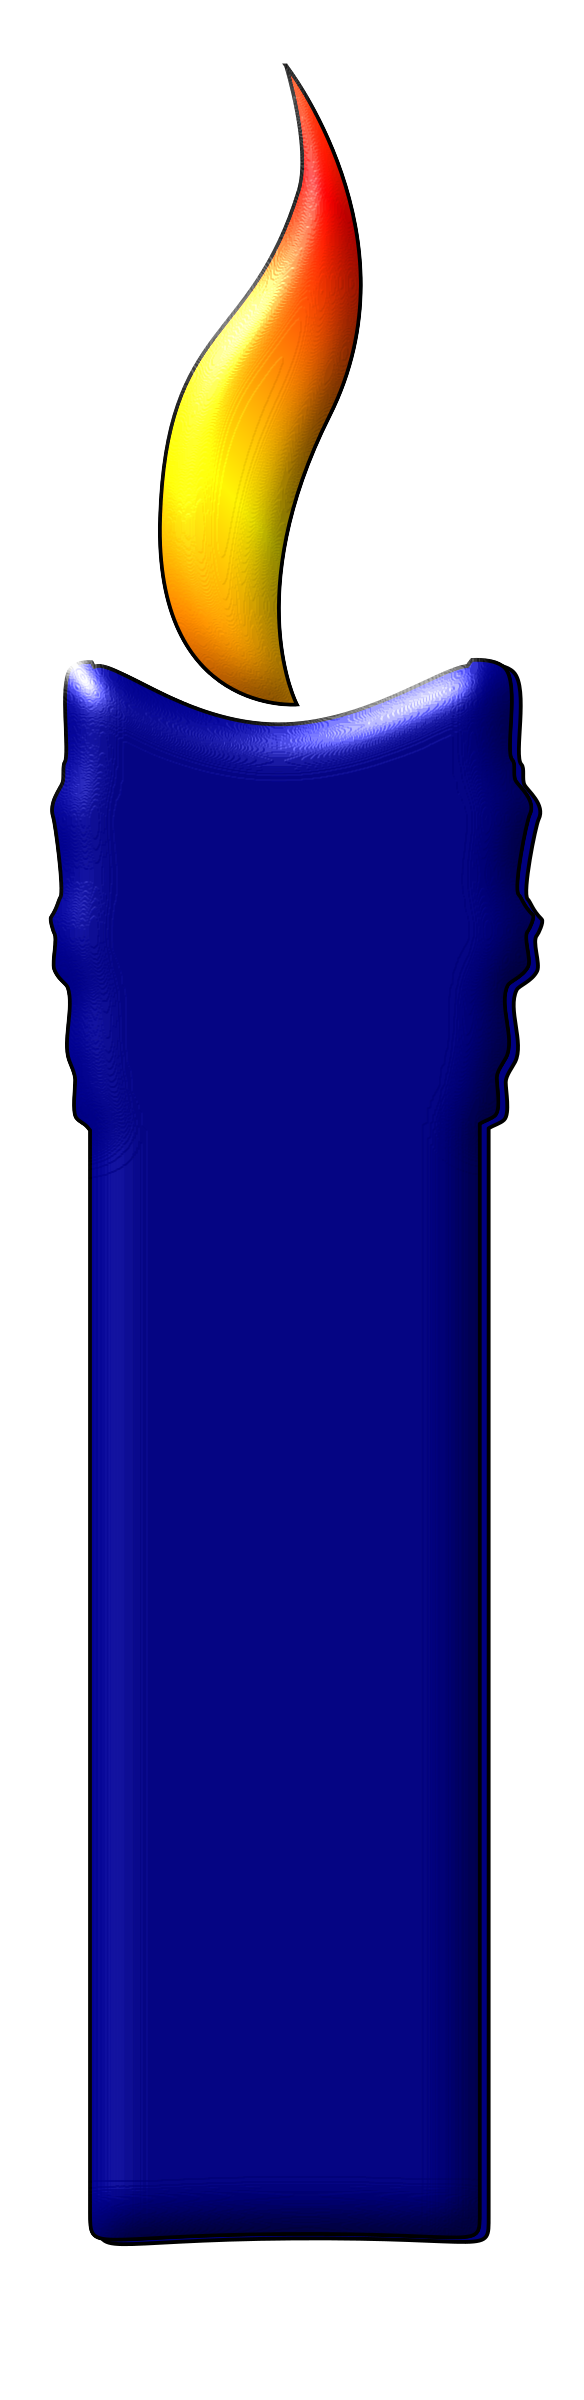 A Blue Color Candle by navaneethks